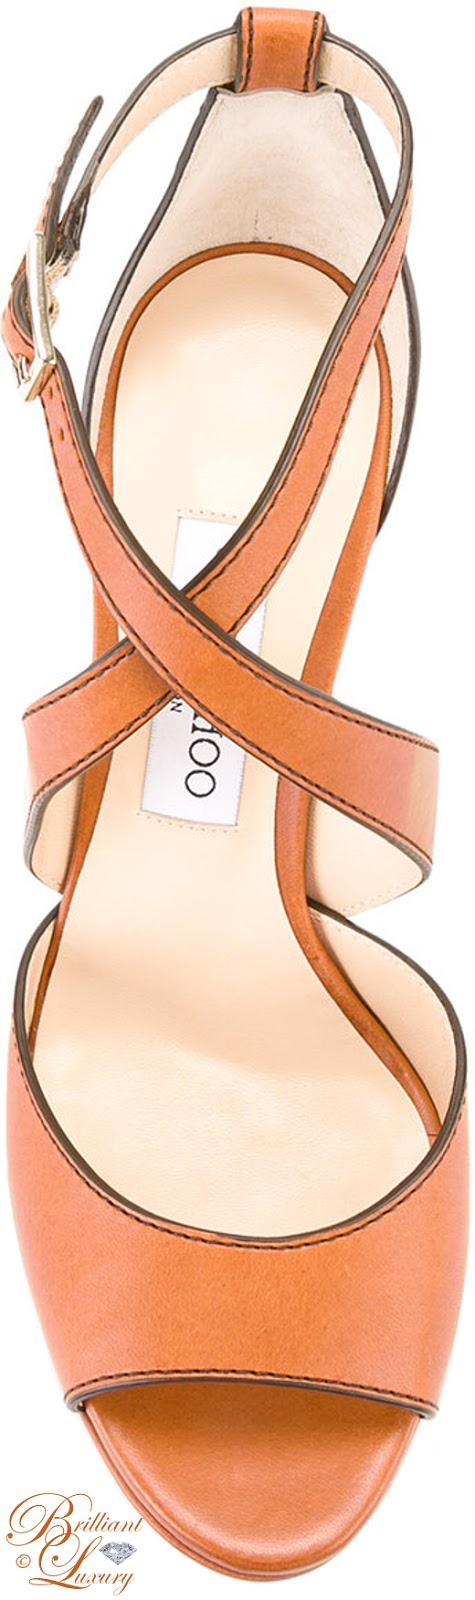 Brilliant Luxury ♦ Jimmy Choo April Sandals